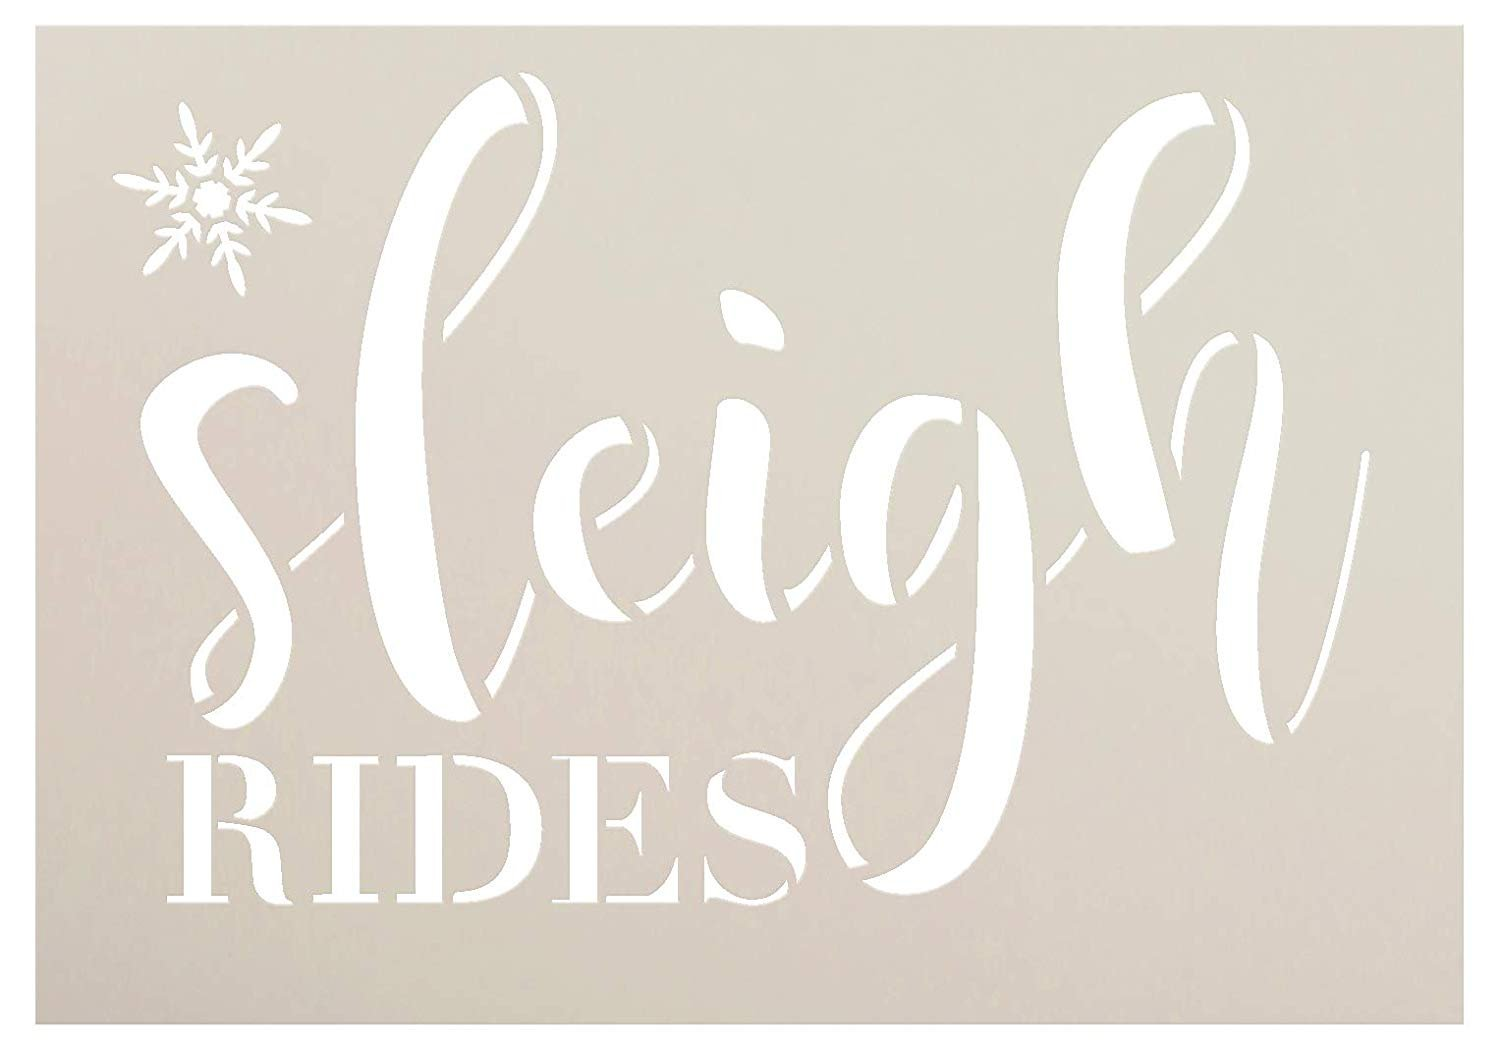 Sleigh Rides Snowflake Stencil by StudioR12   Christmas Winter Cursive Script   Reusable Mylar Template   Paint Wood Signs   Craft Holiday Home Decor   DIY Vintage Farmhouse   Select Size